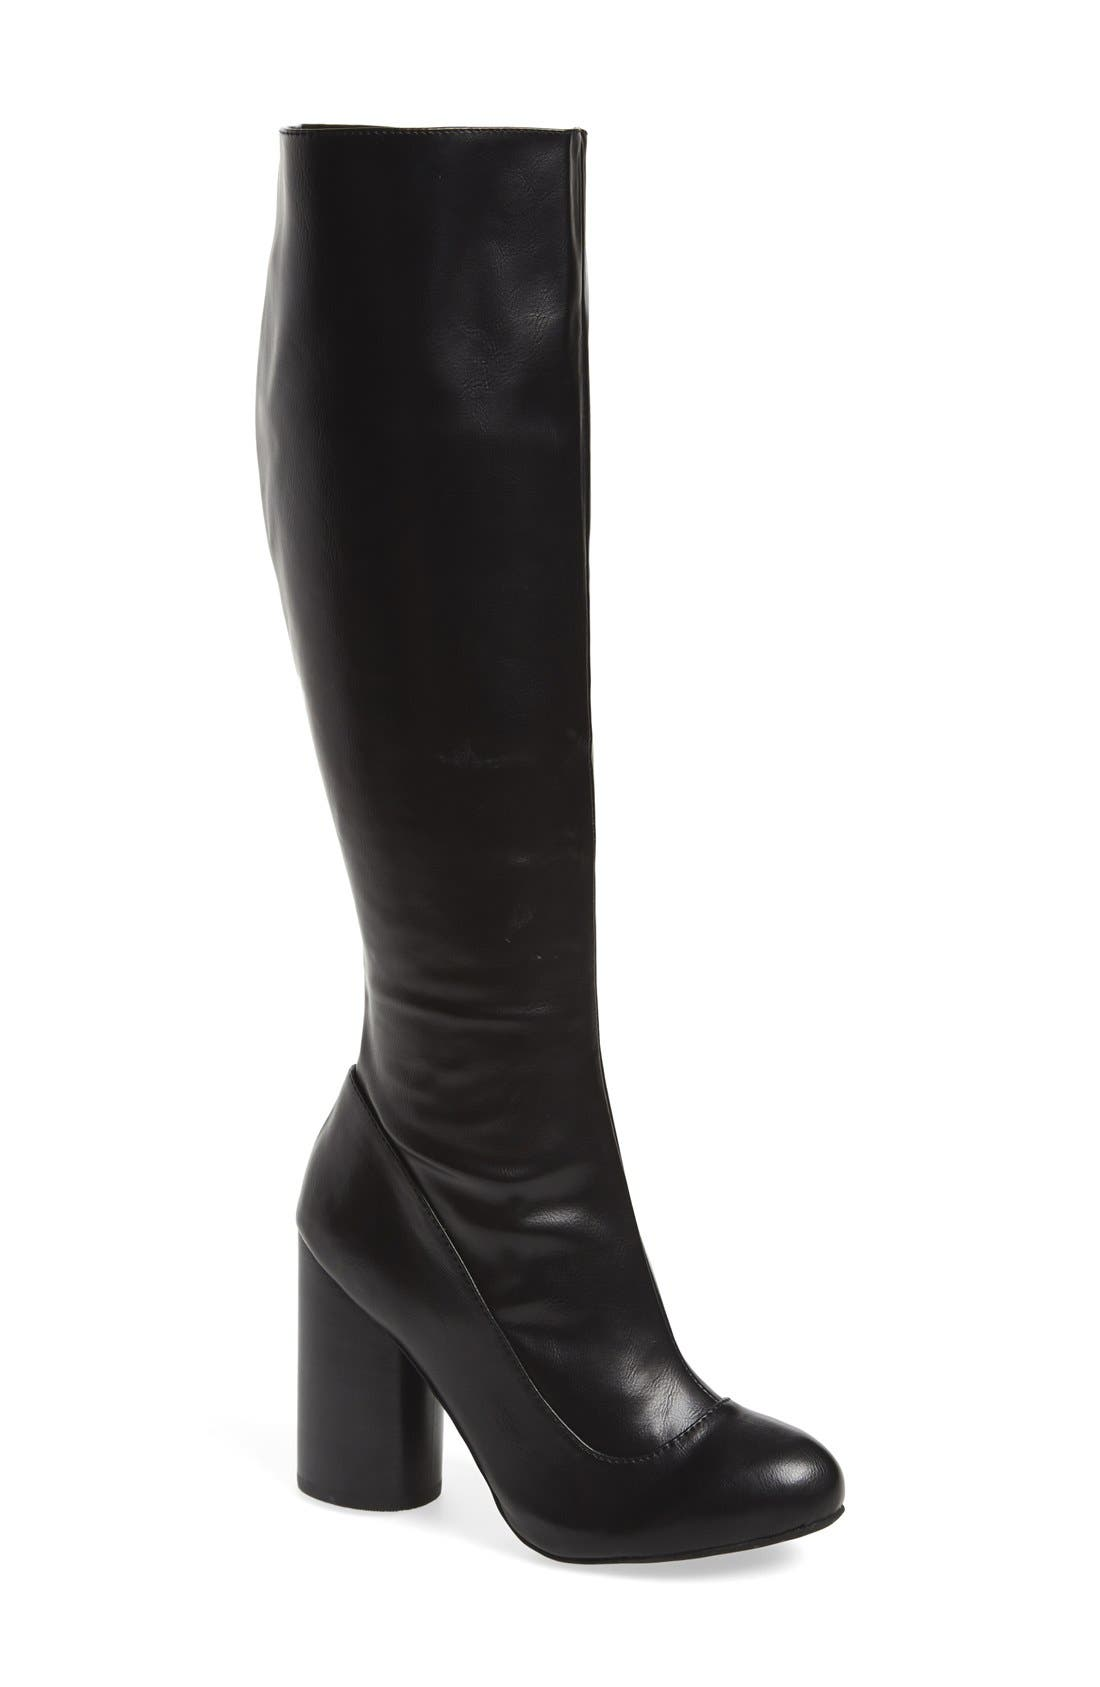 Alternate Image 1 Selected - Jeffrey Campbell 'Sequel - Hi' Tall Boot (Women)